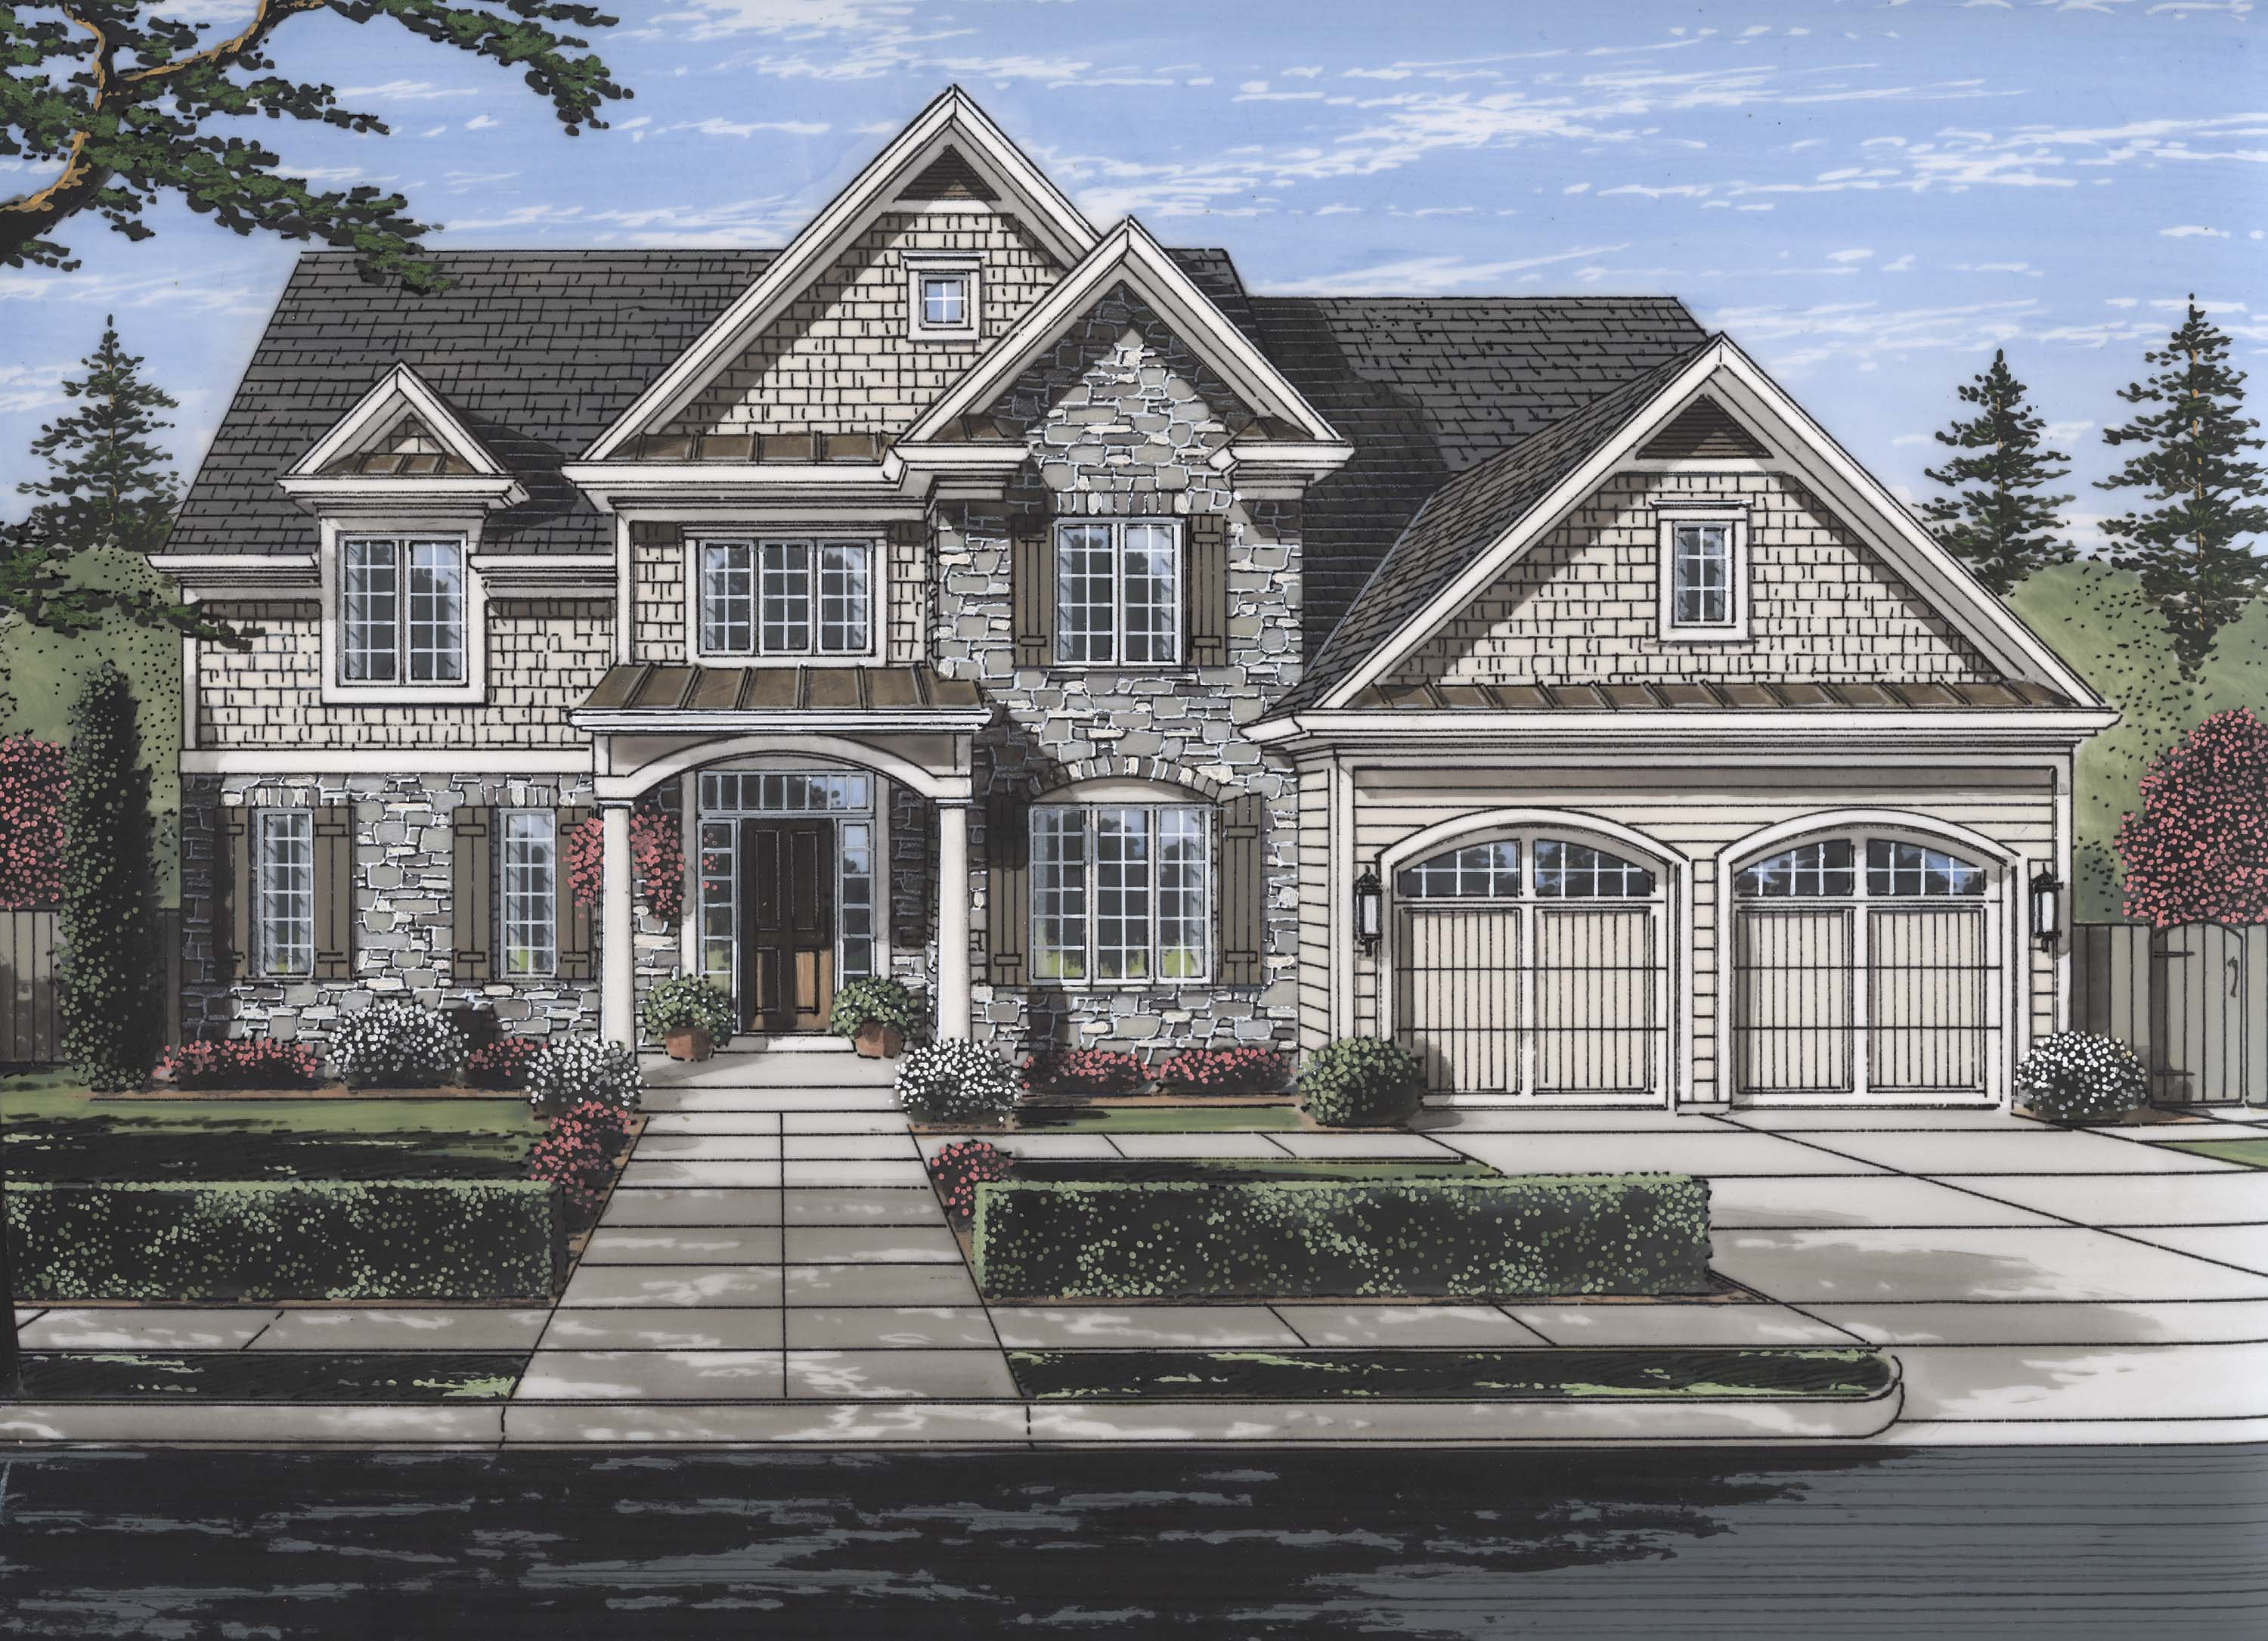 Luxury house plan 169 1117 4 bedrm 3113 sq ft home for Theplancollection com modern house plans